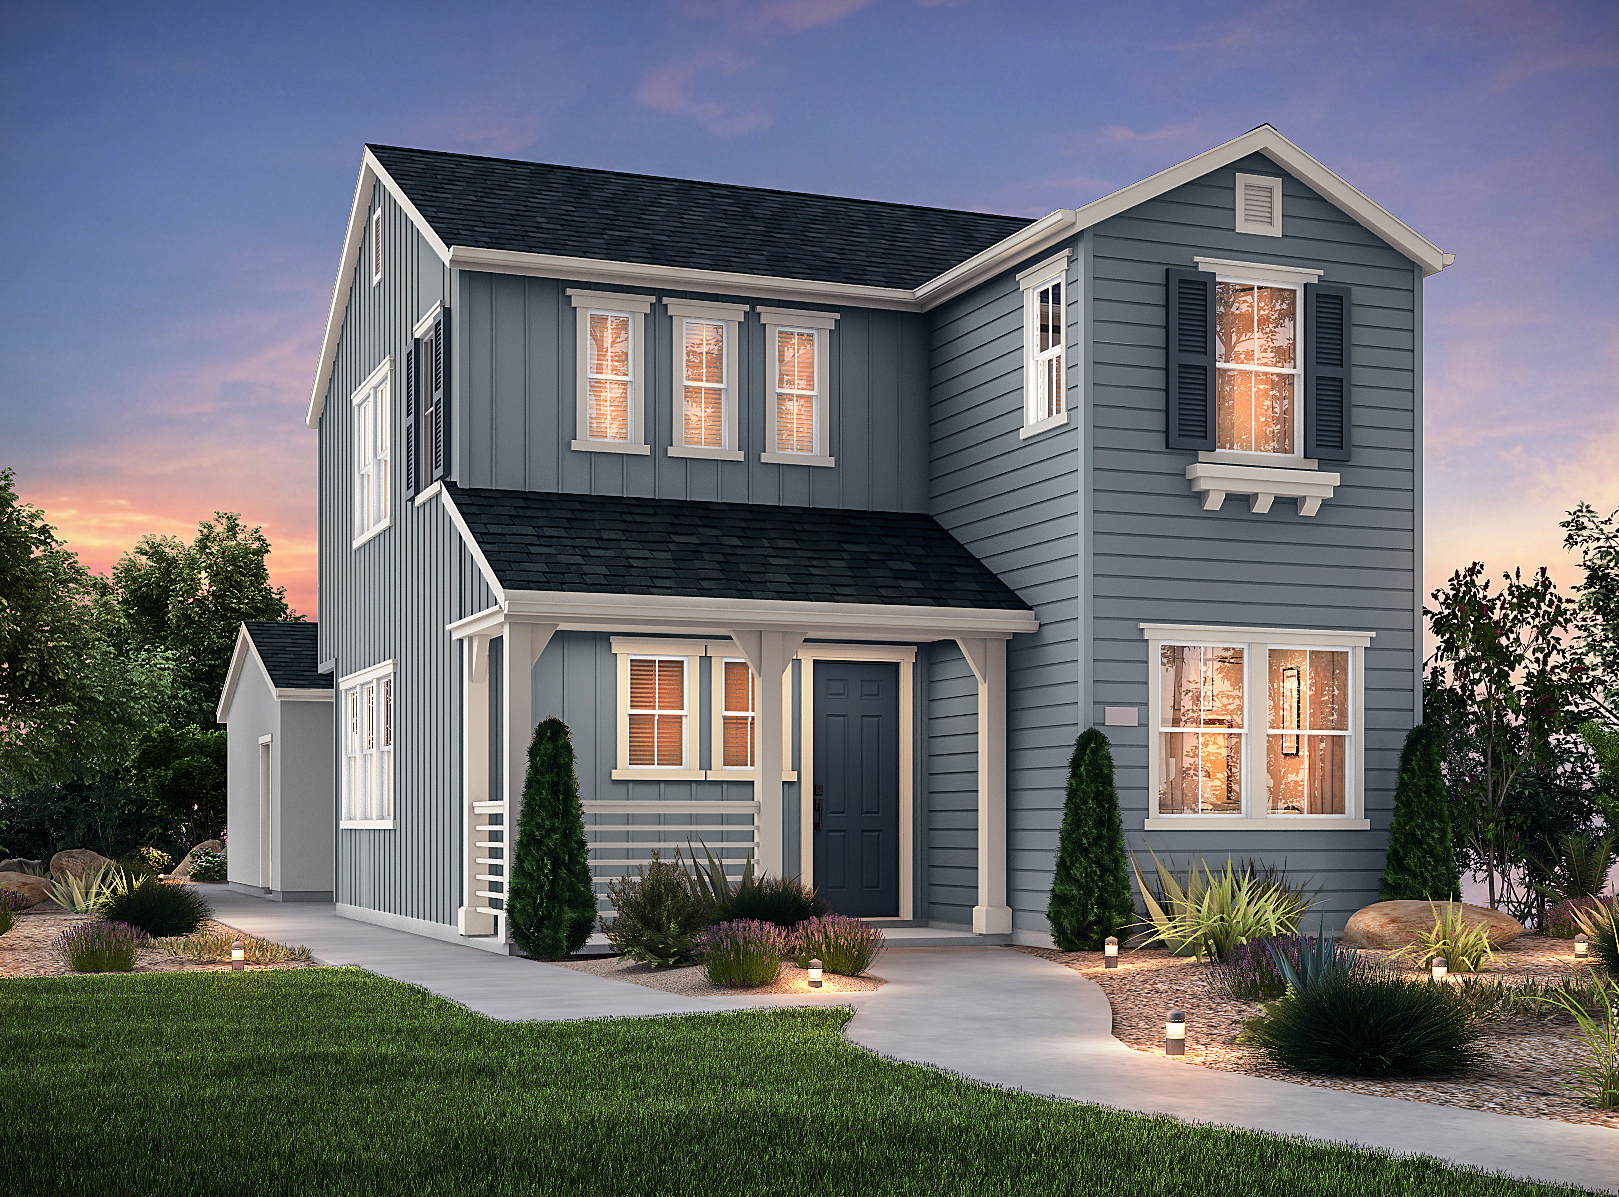 New Homes In Mountain House Ca Easy Access To Hwy 580 Loft Light Wiring Diagram Farmhouse